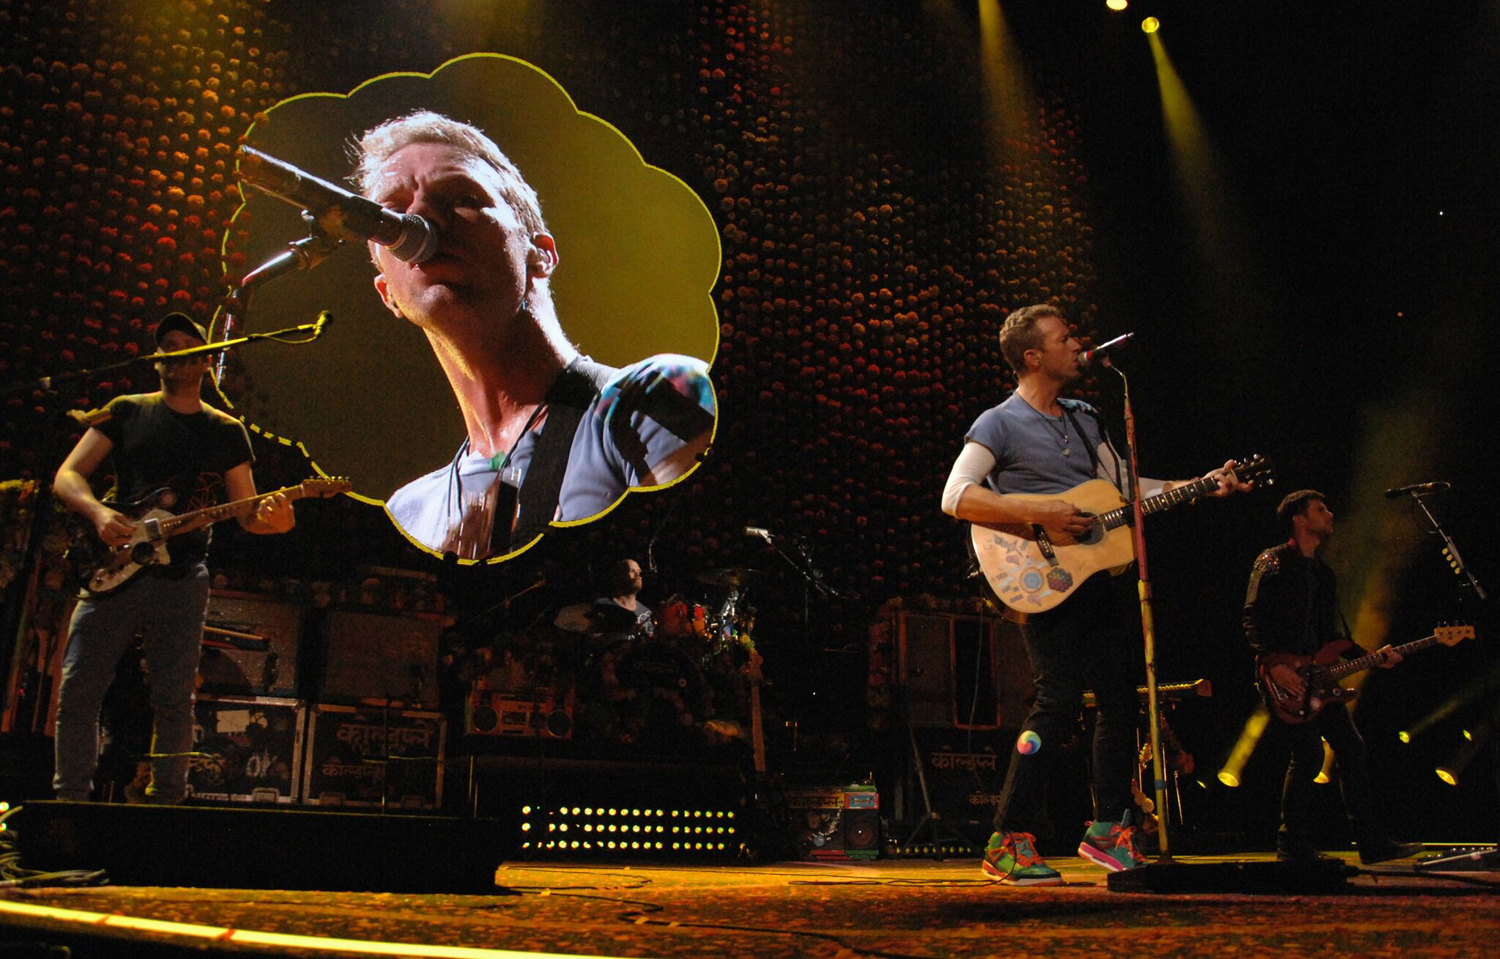 Man singing in a concert grandstand alone clipart clip free stock Coldplay Visits First Niagara Center: A Head Full of Dreams, A Dream ... clip free stock